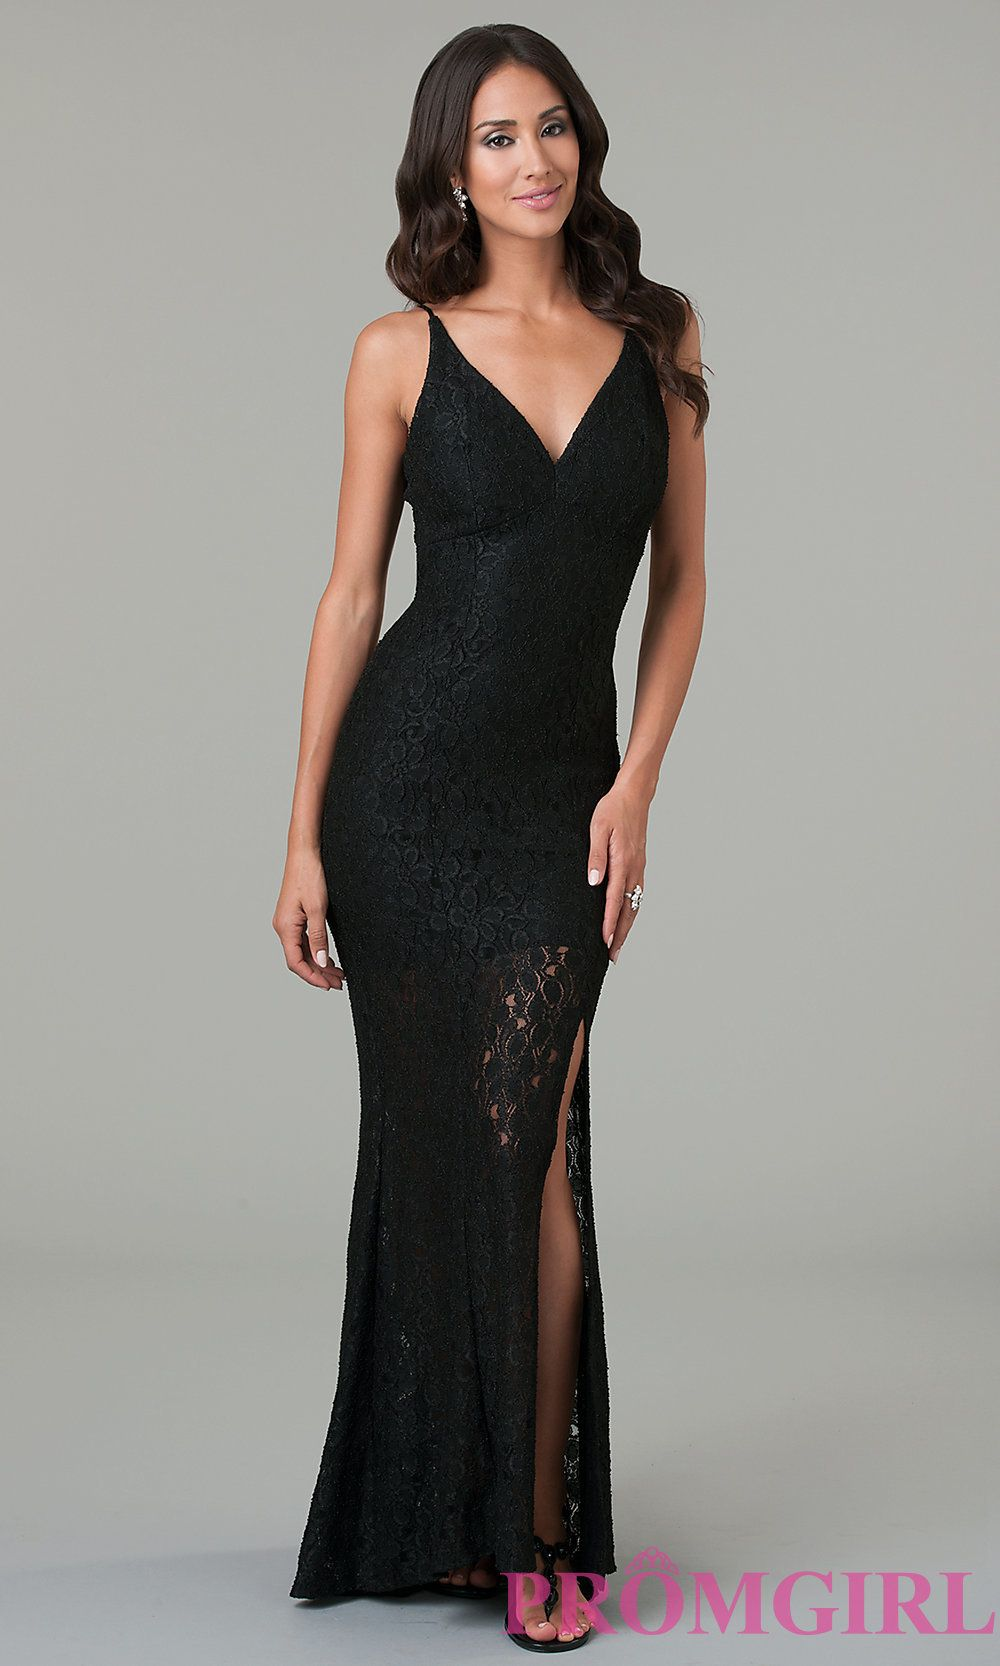 Black dress gown - Find This Pin And More On Ball Gowns 2016 Long Spaghetti Strap Black Lace Dress